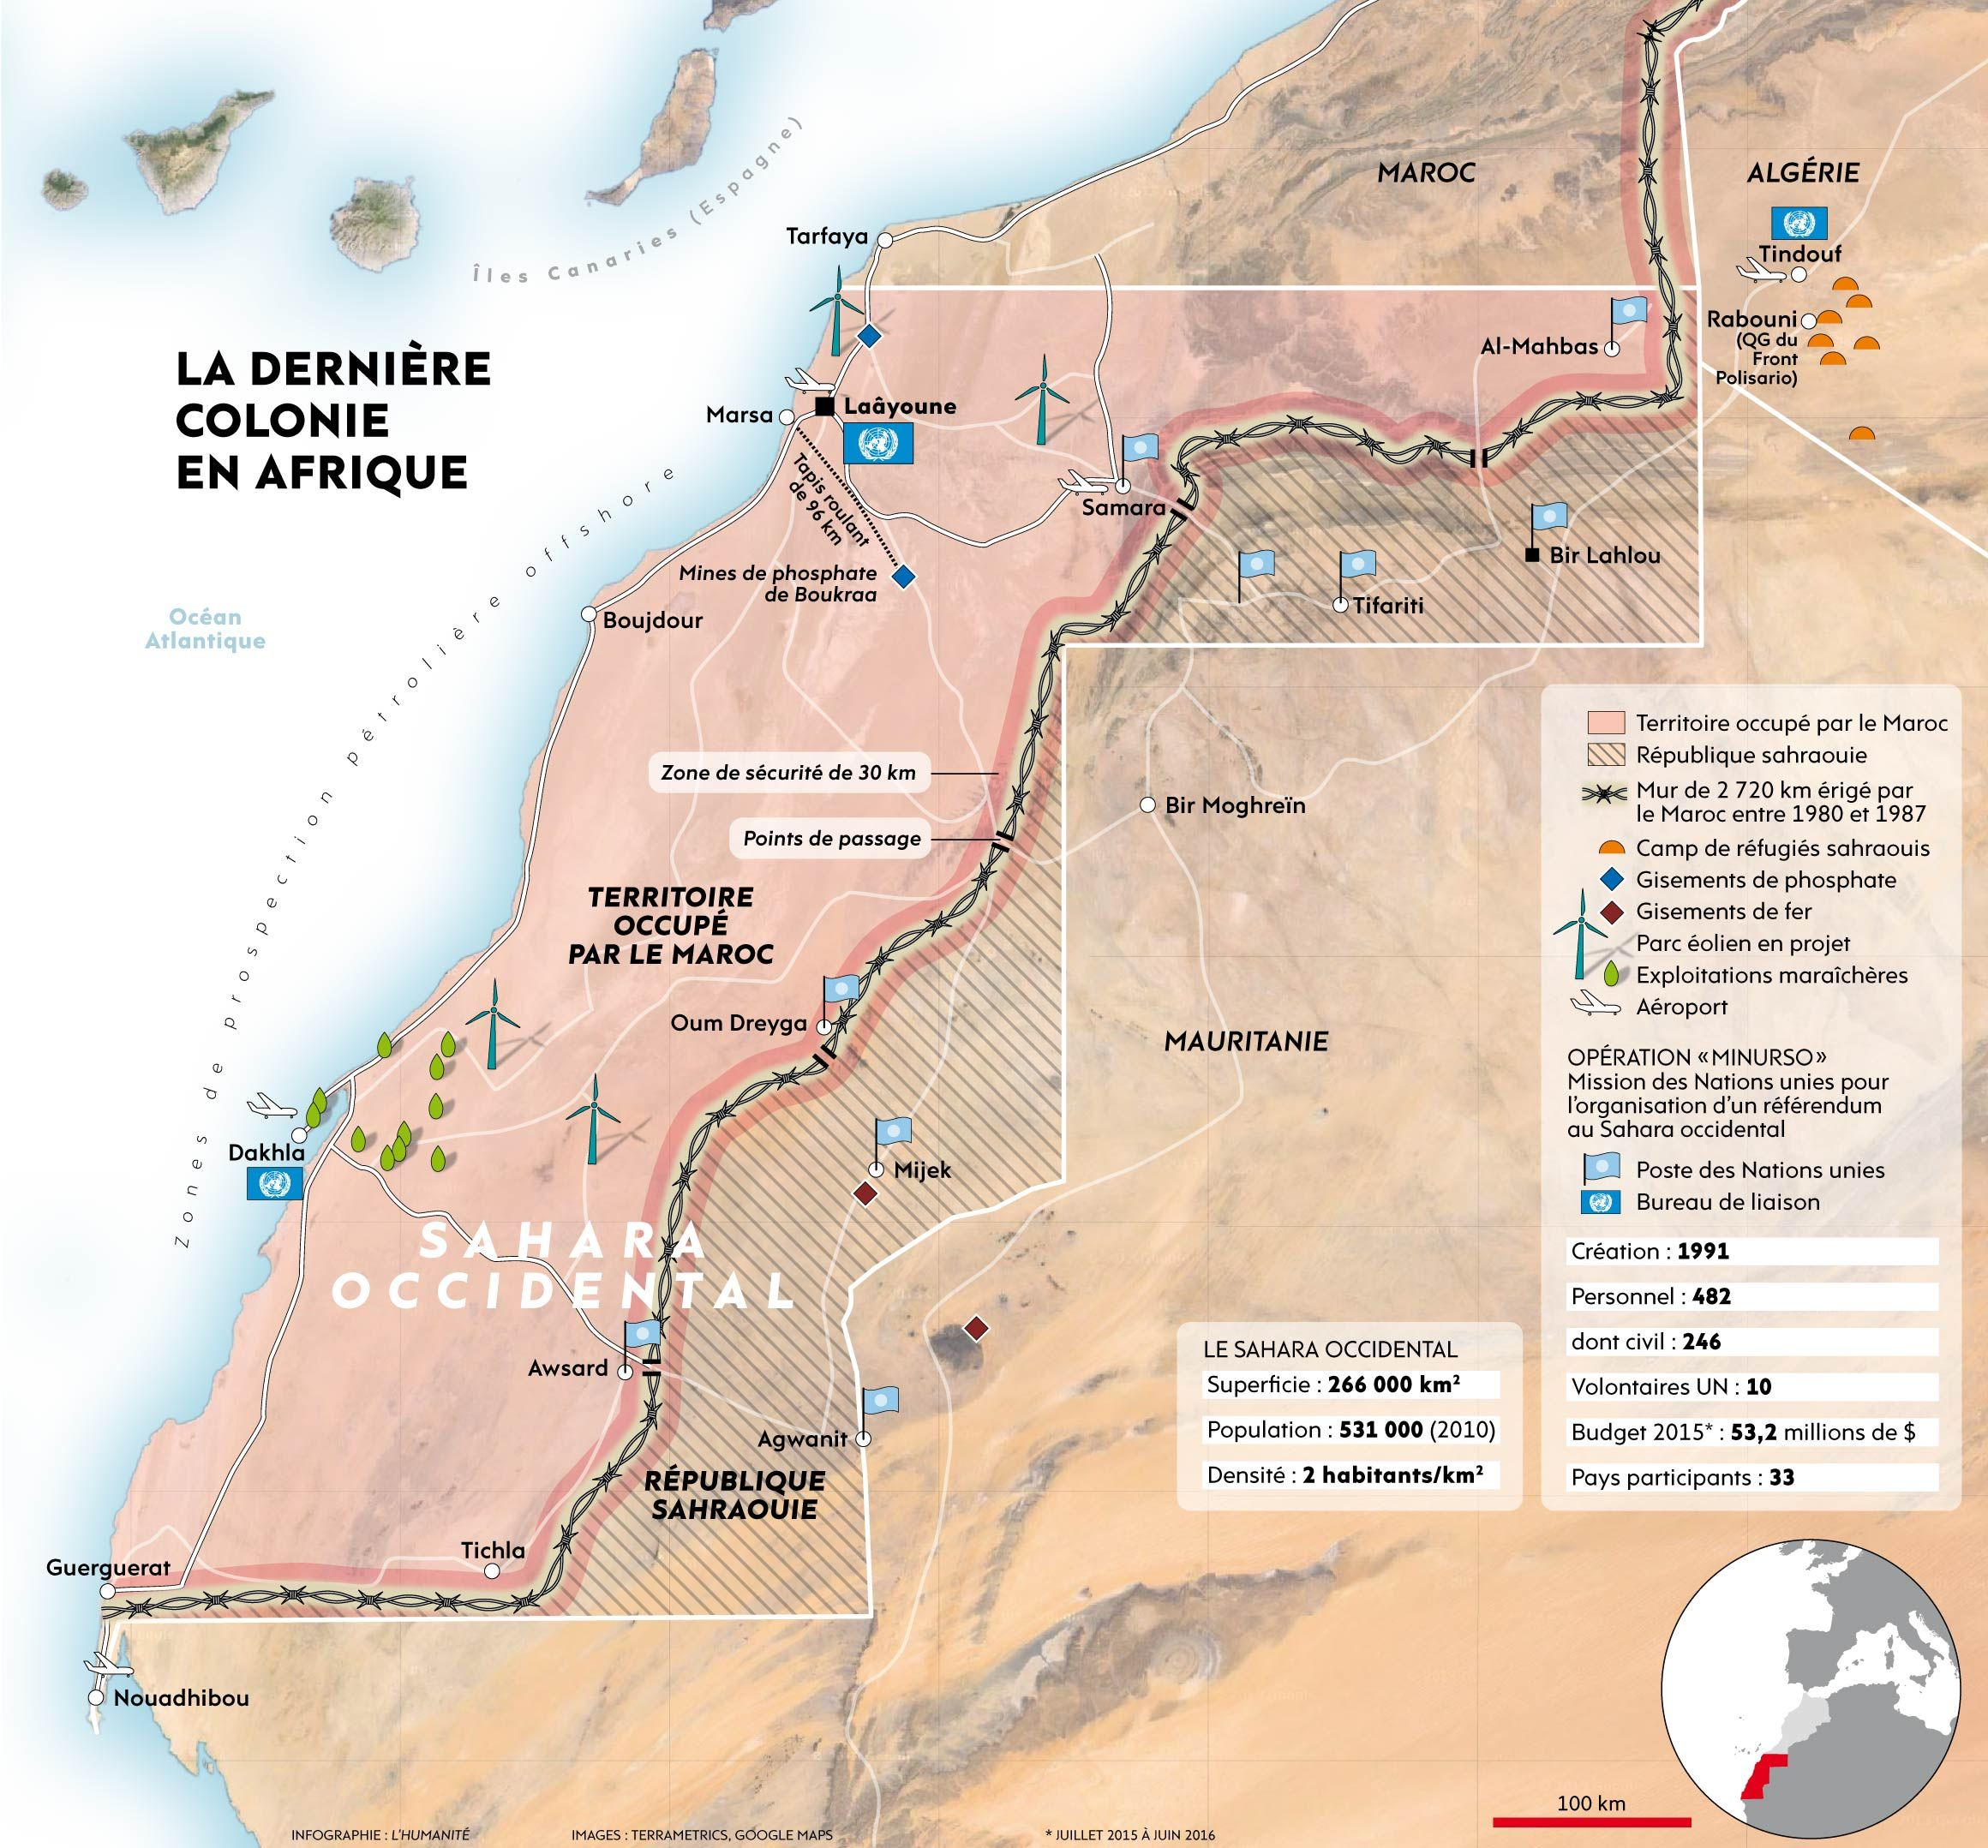 Africas last colony Western Sahara under Moroccan occupation